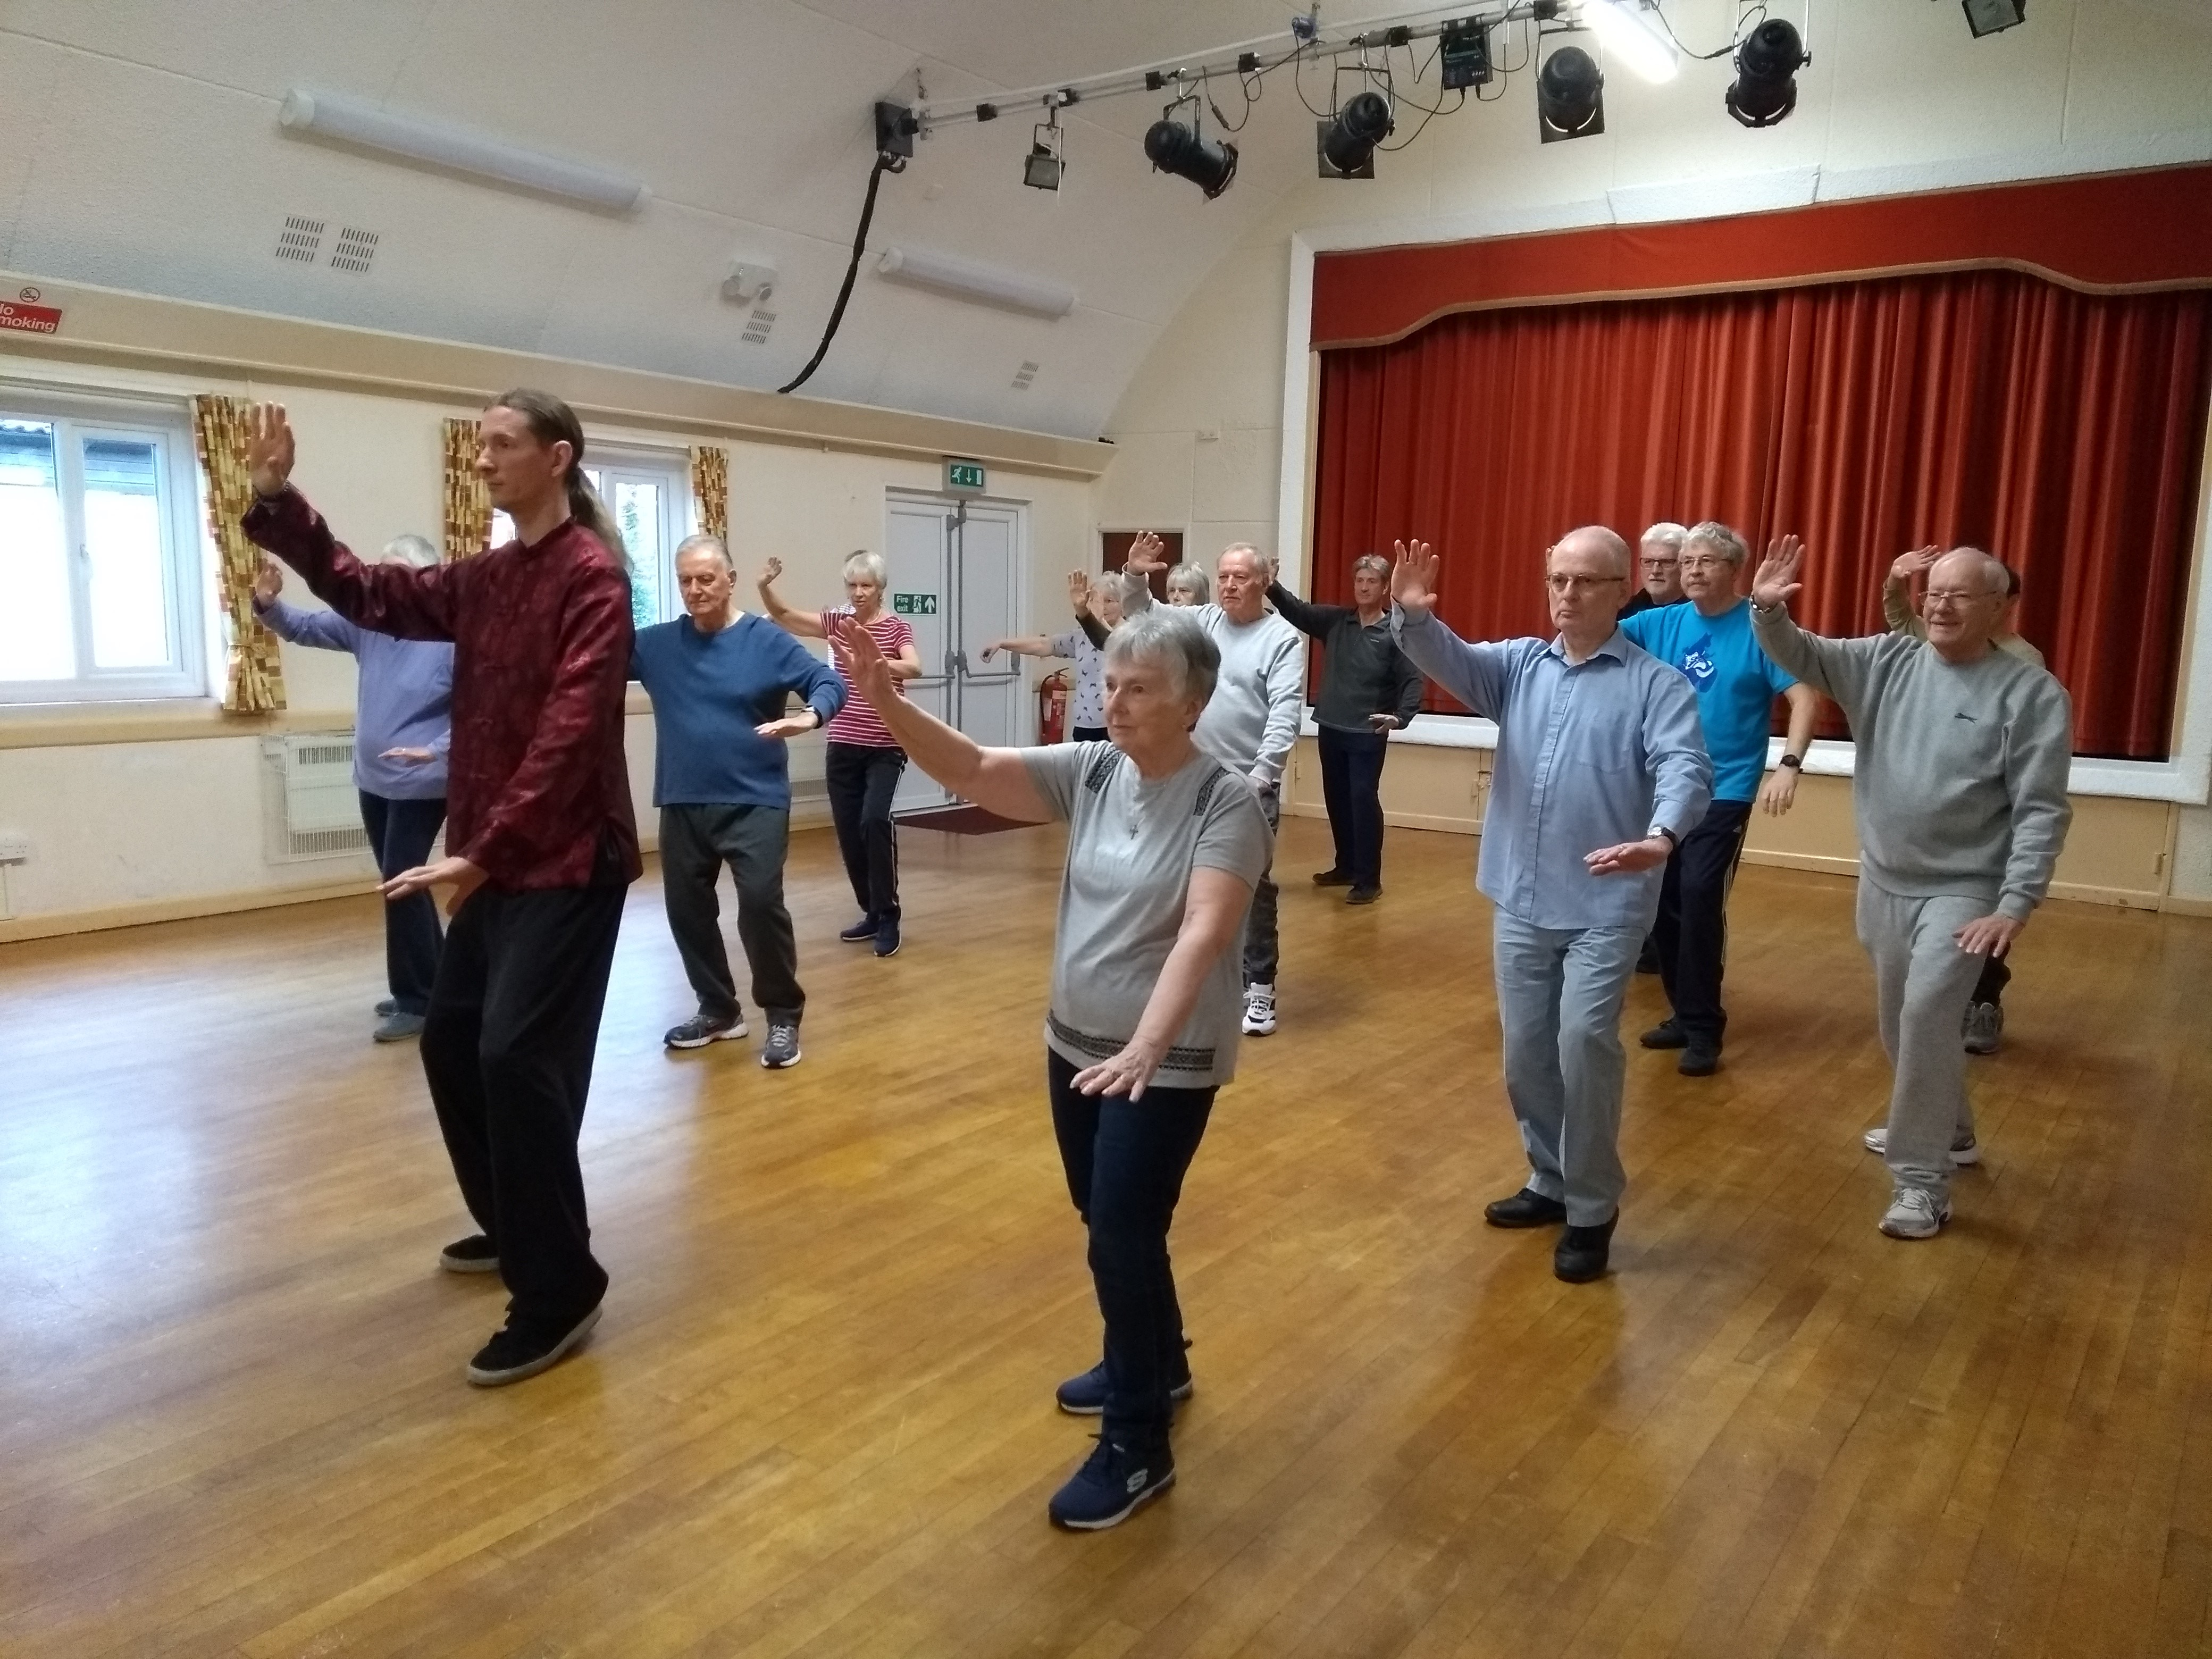 Tai Chi Class 1 in action